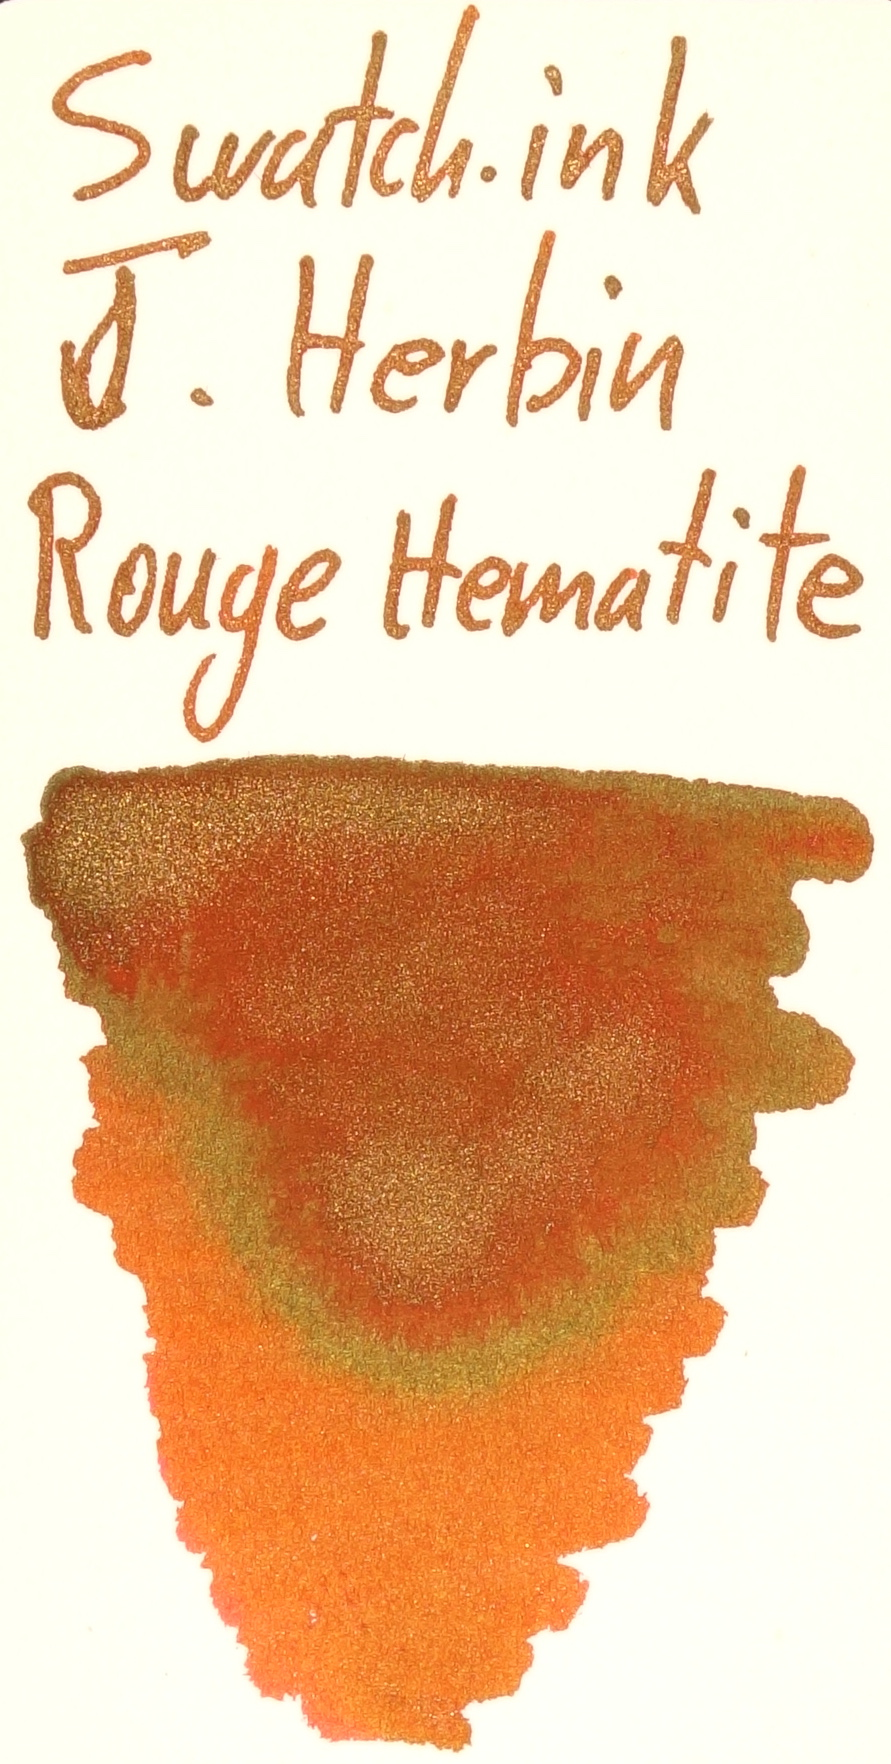 J. Herbin Rouge Hematite Swatch.ink.JPG